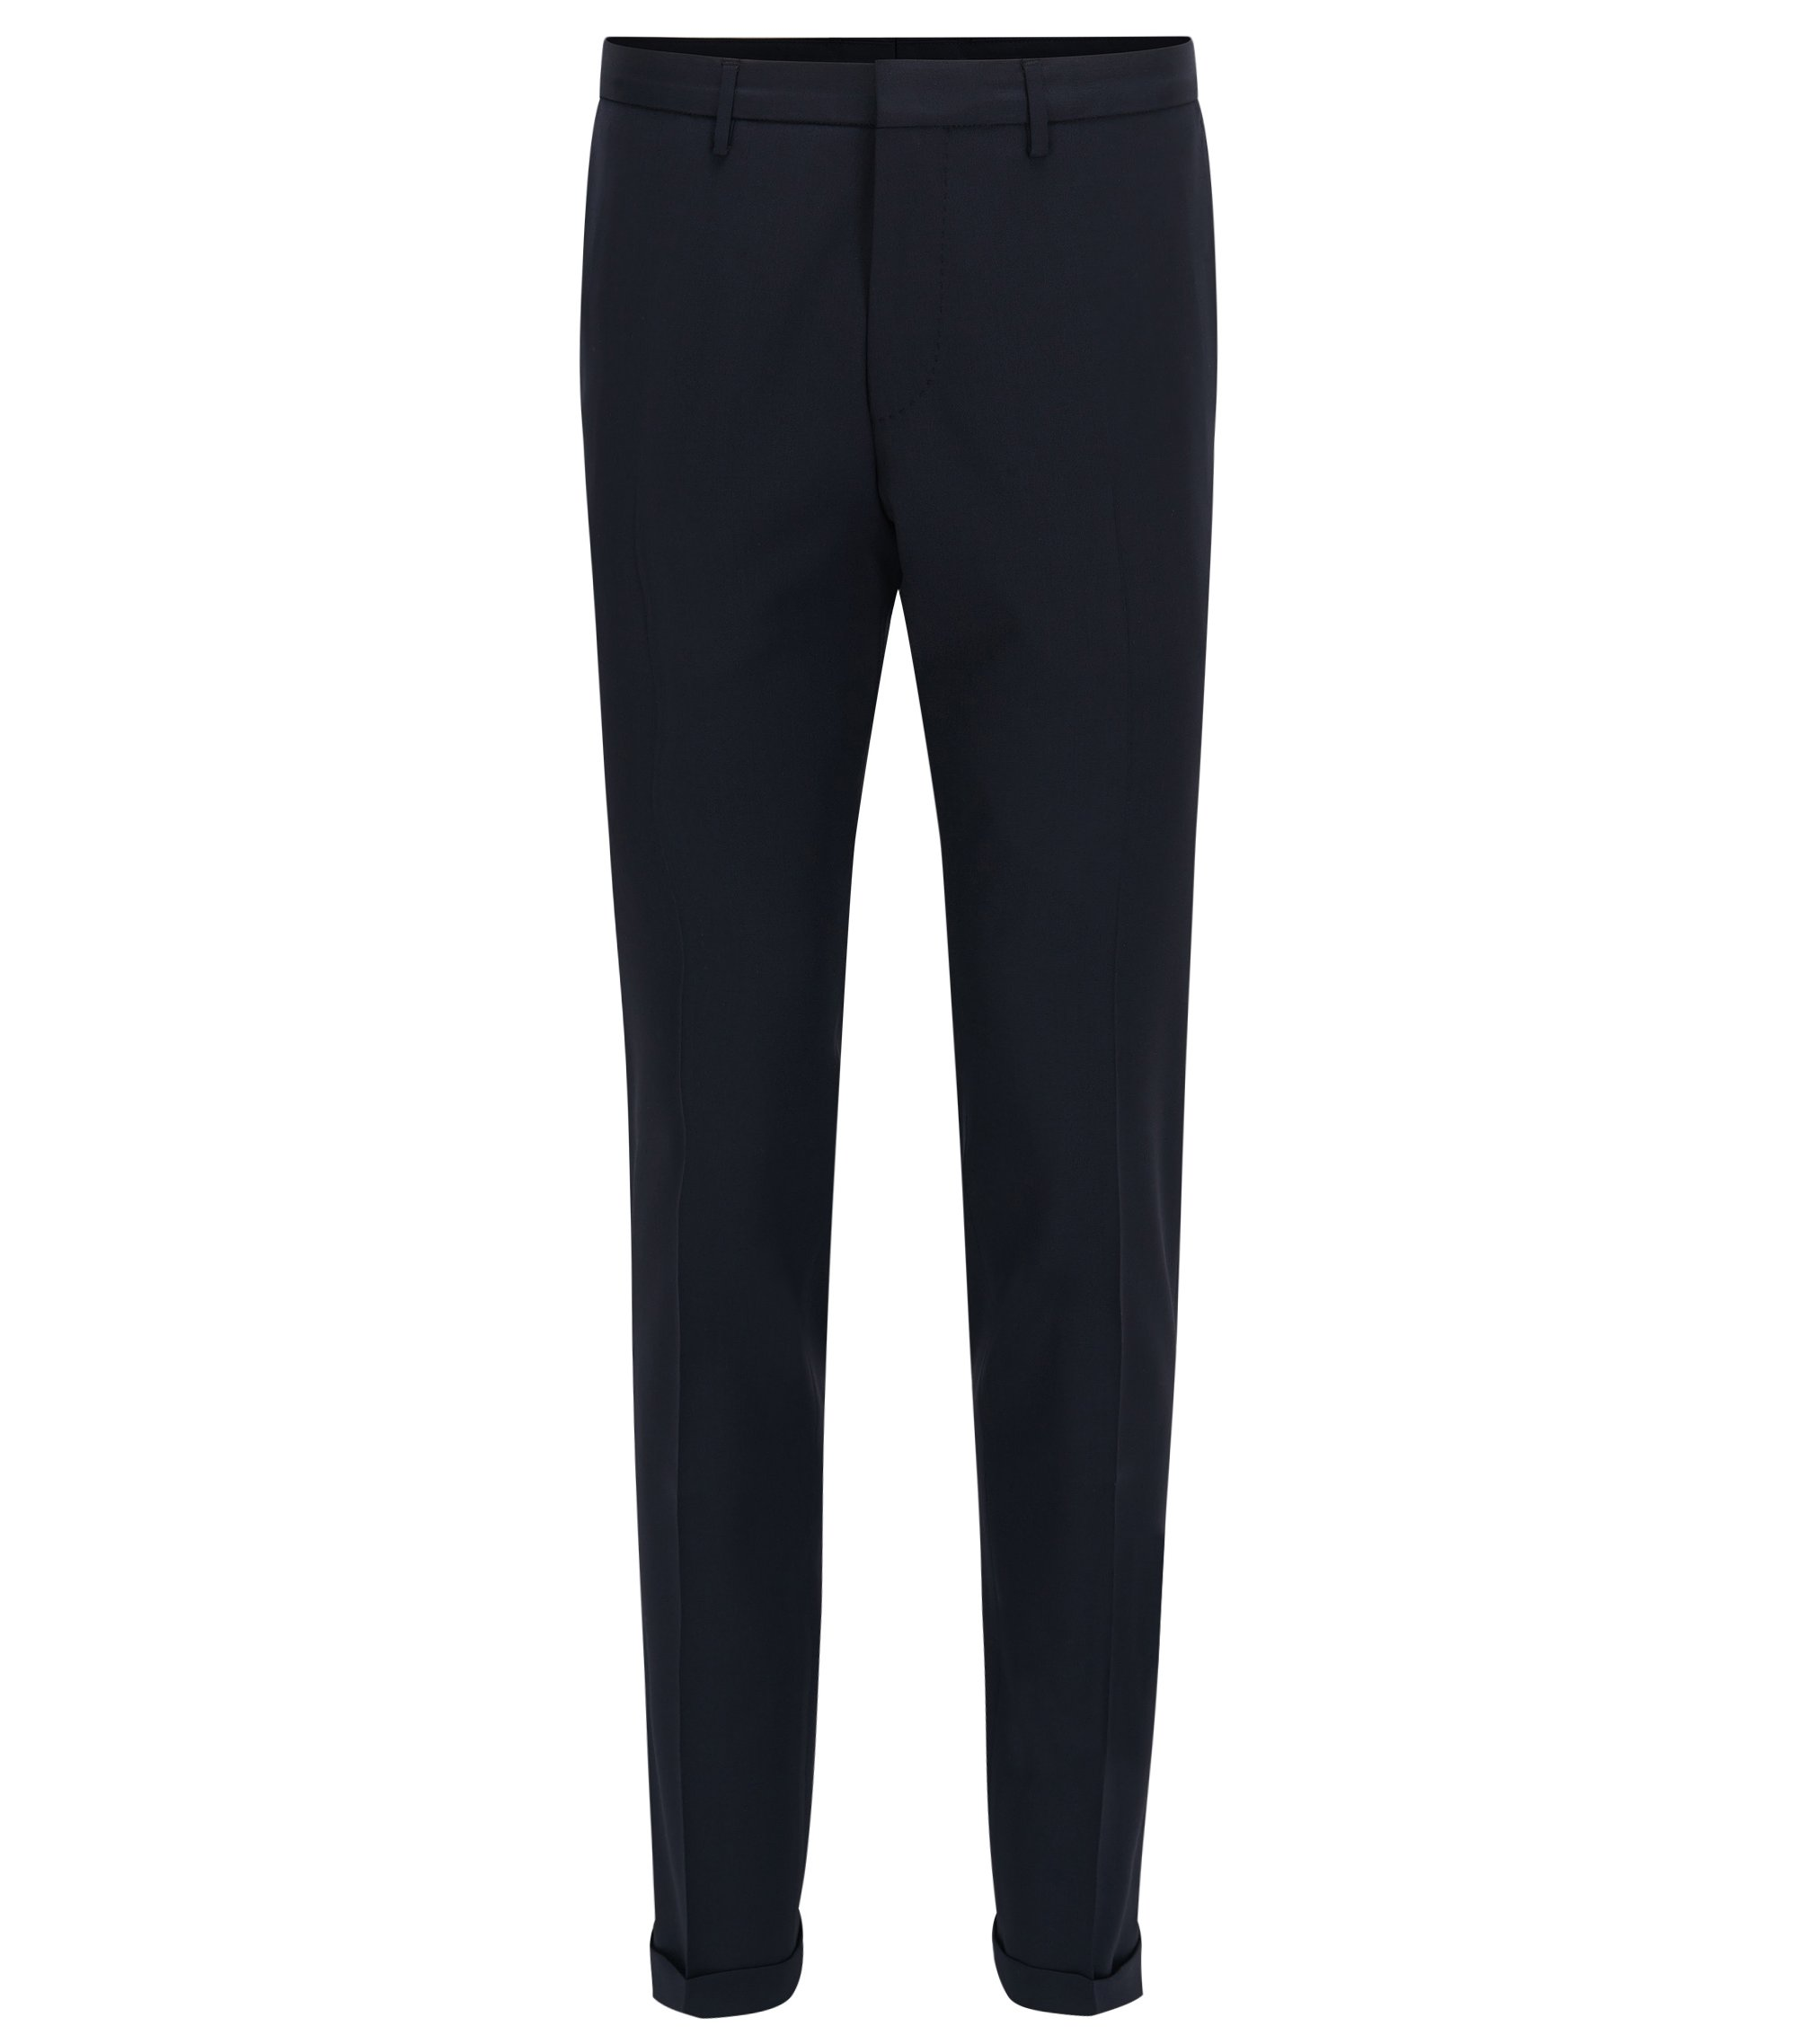 Pantaloni extra slim fit in lana vergine, Blu scuro